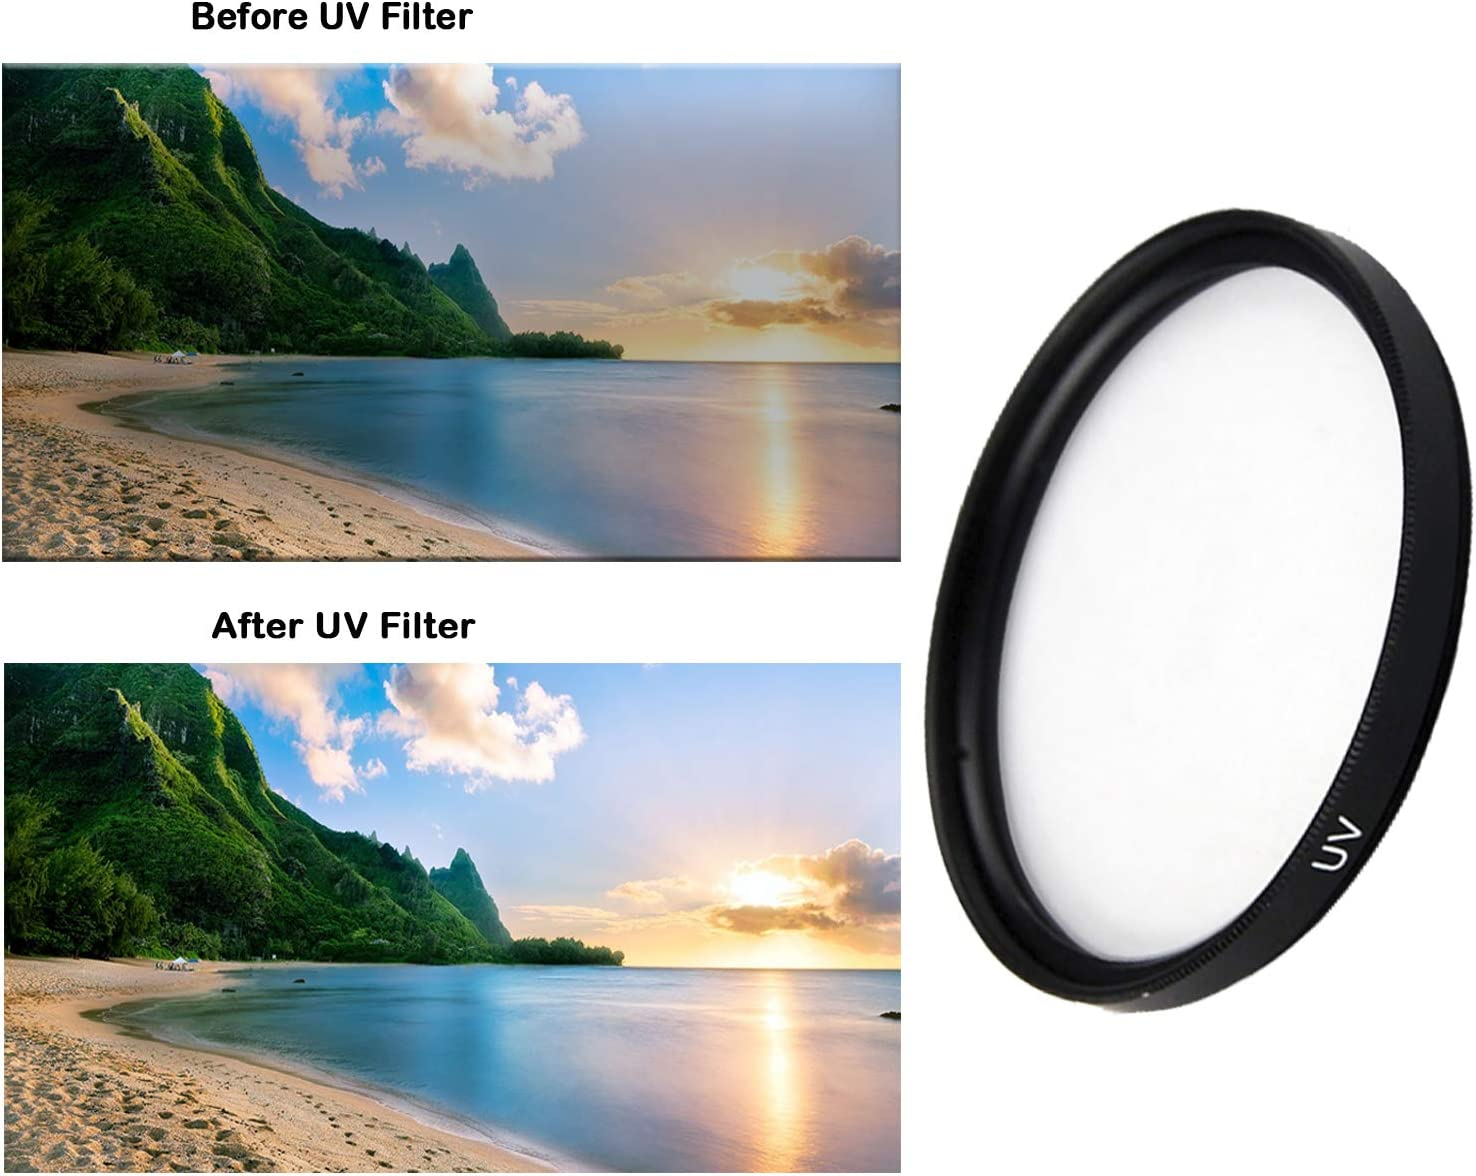 Universal Protective UV Filter 77mm for Canon EF-S 17-55 mm 2.8 IS USM